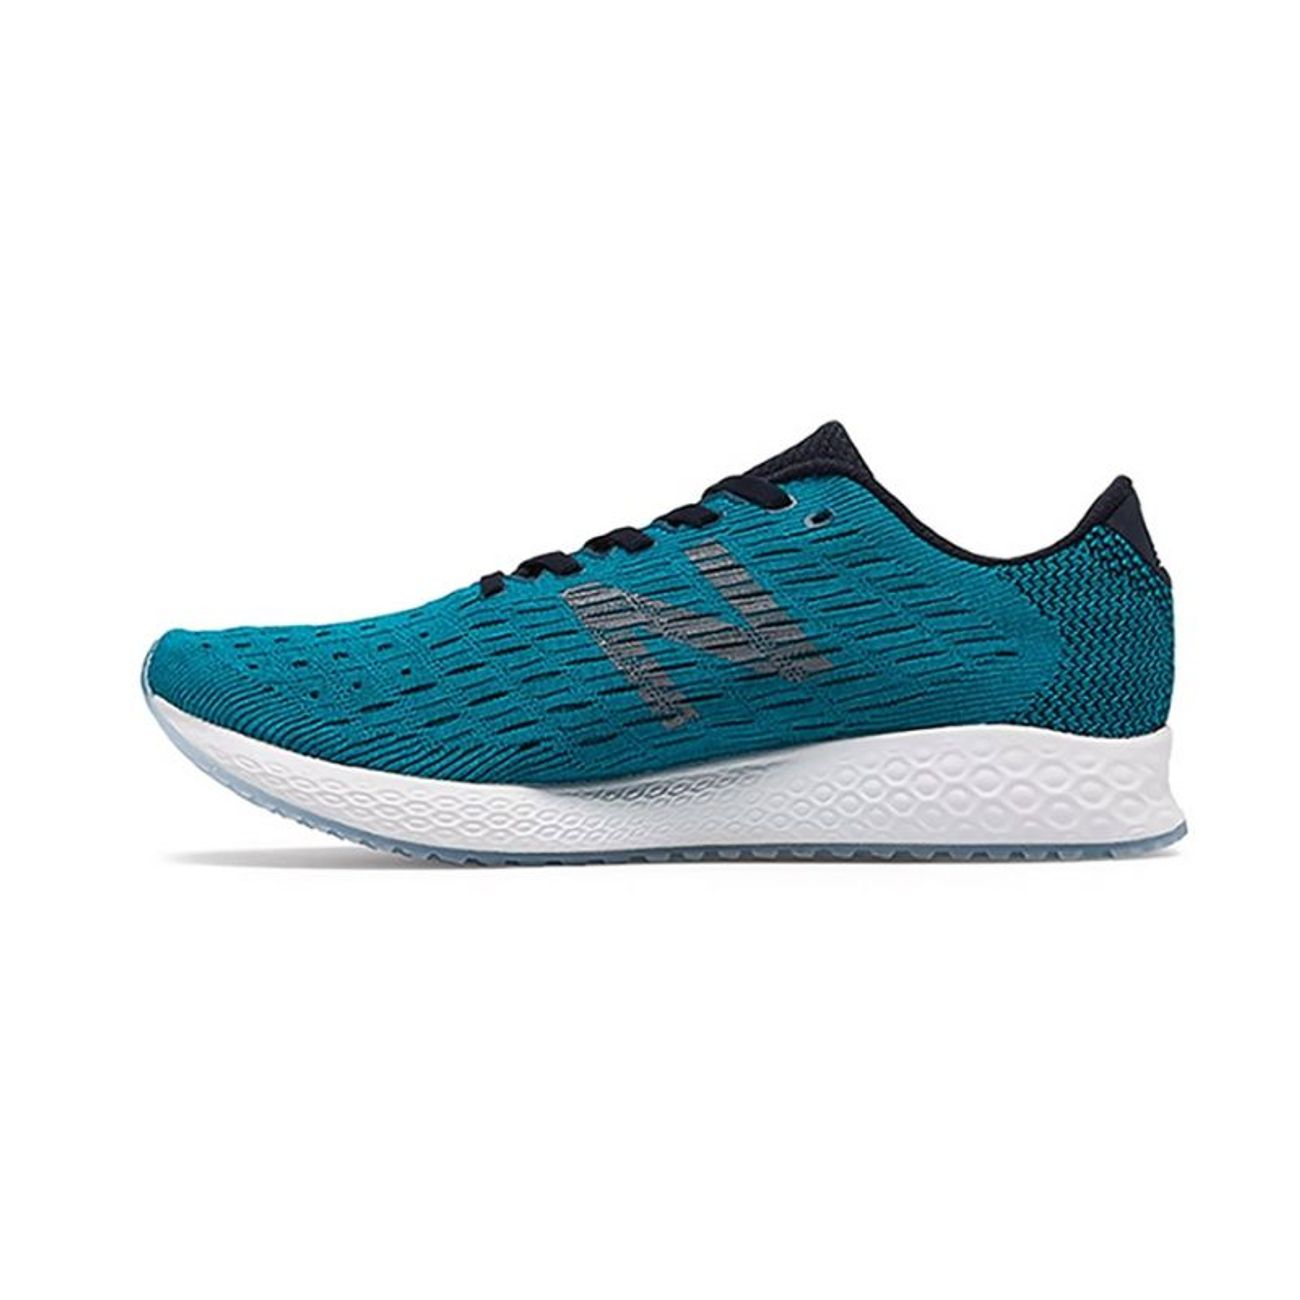 Foam Blanc Adulte New Bleu Running Mzan Pdo Pursuit Zante Balance Fresh tdCrQsh